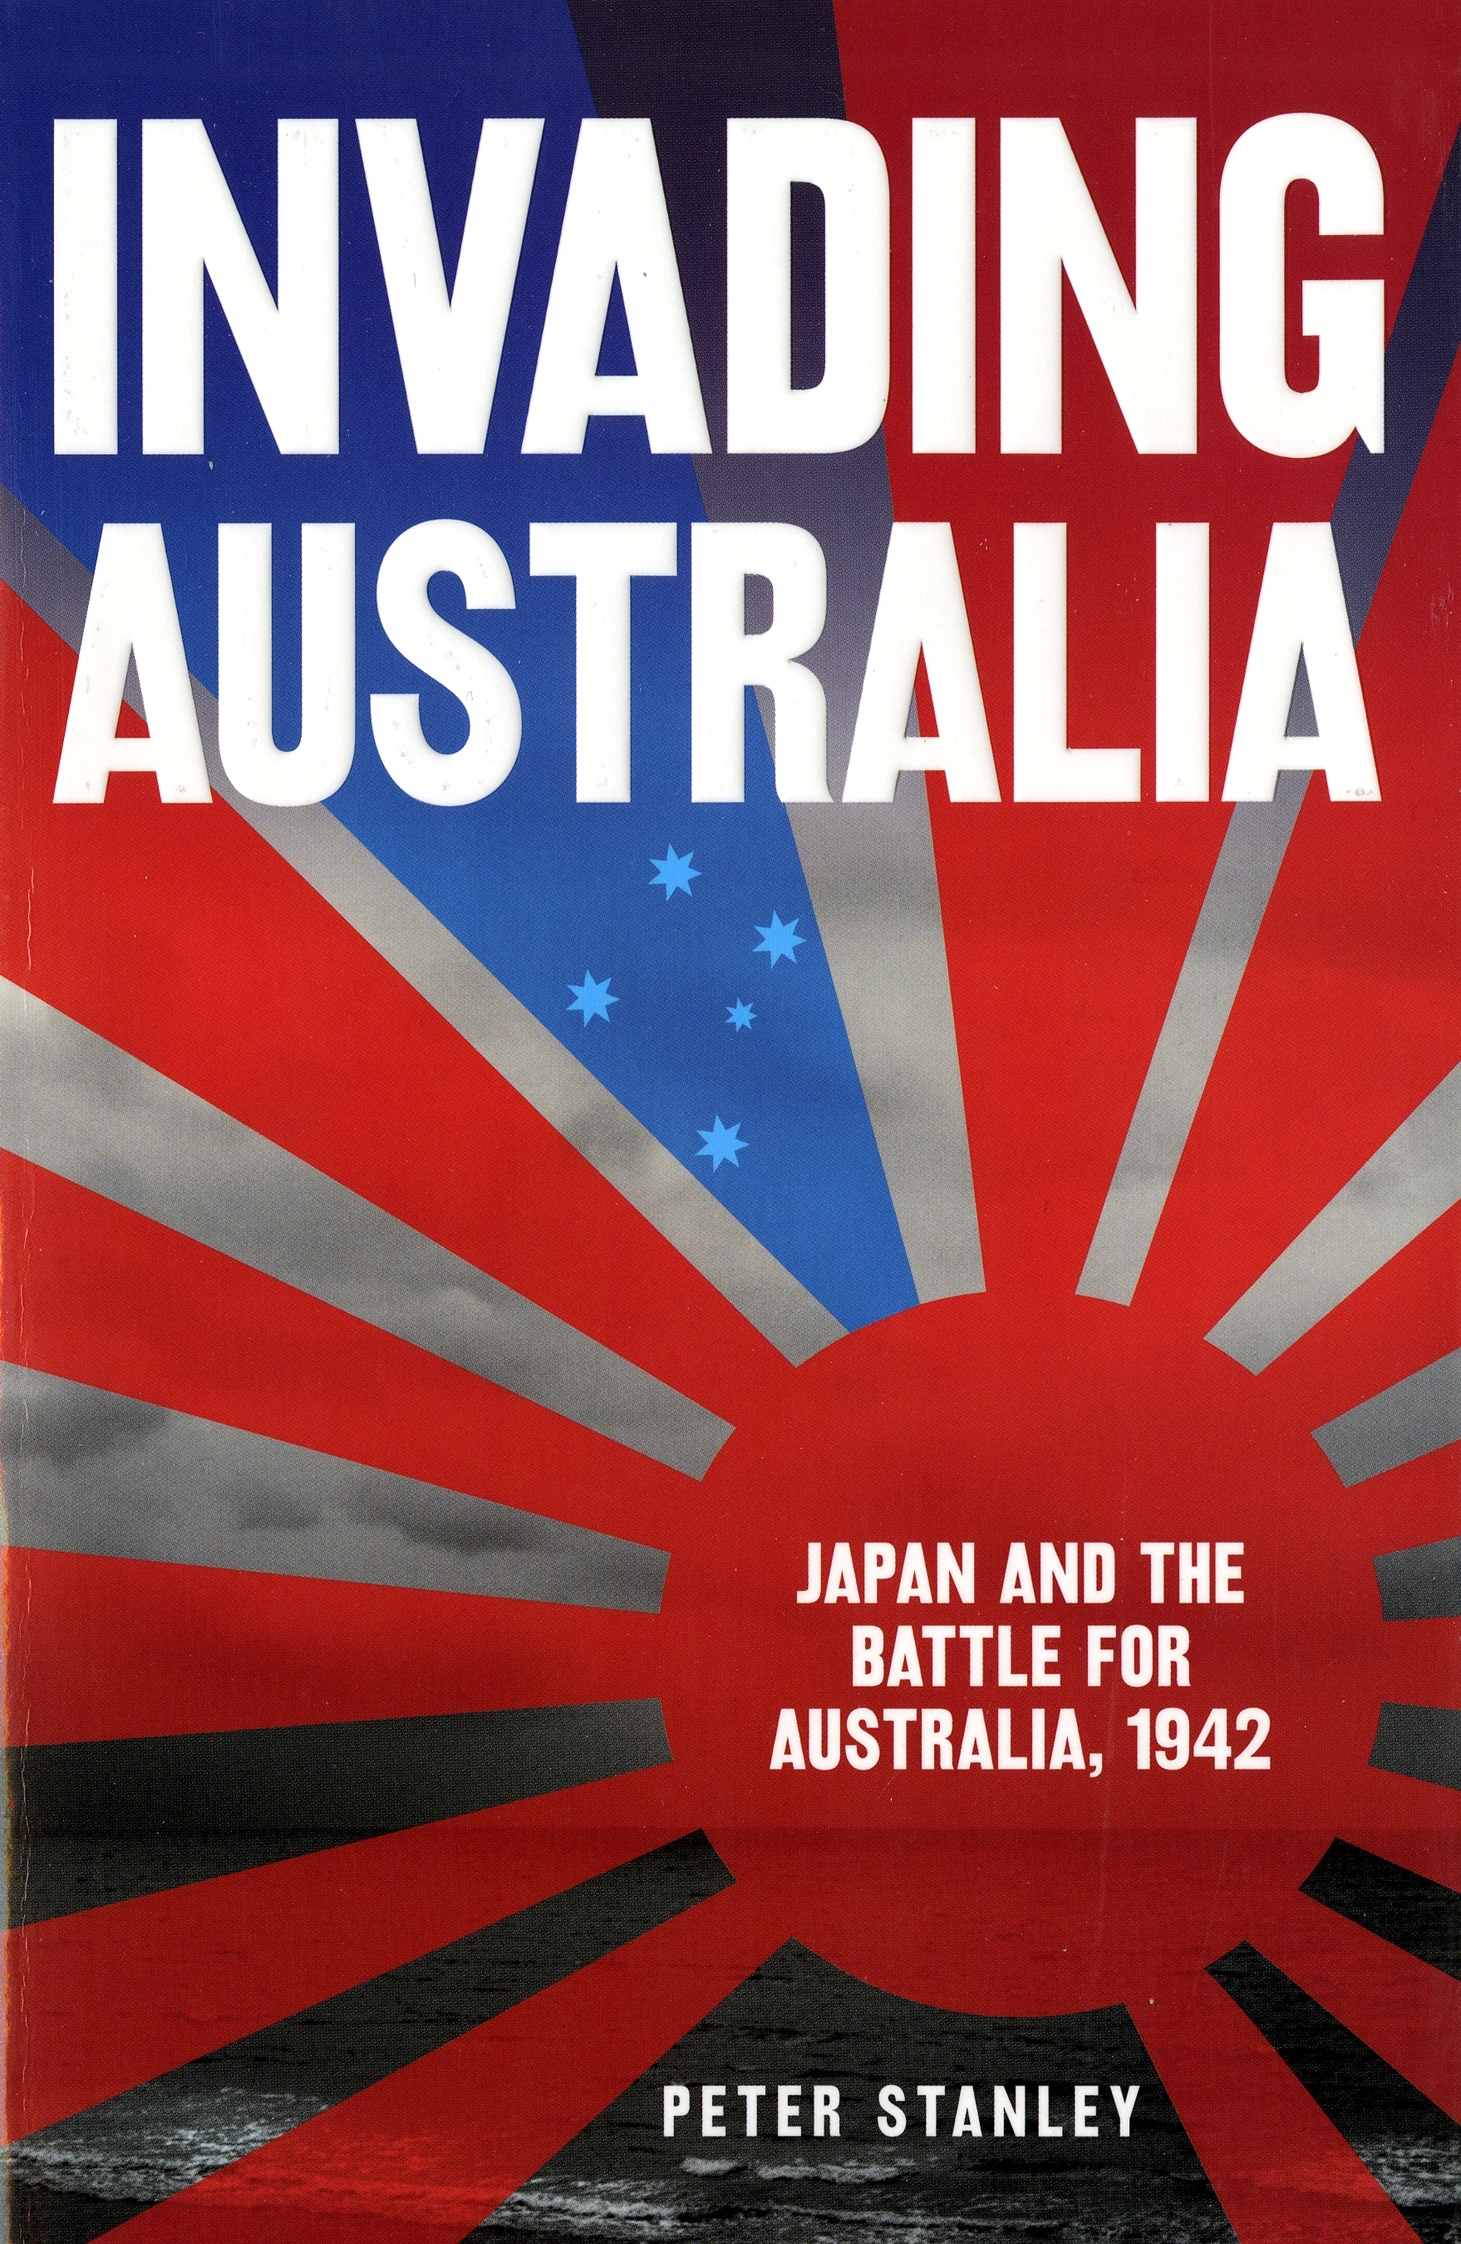 invading australia japan and the battle for australia 1942 stanley peter